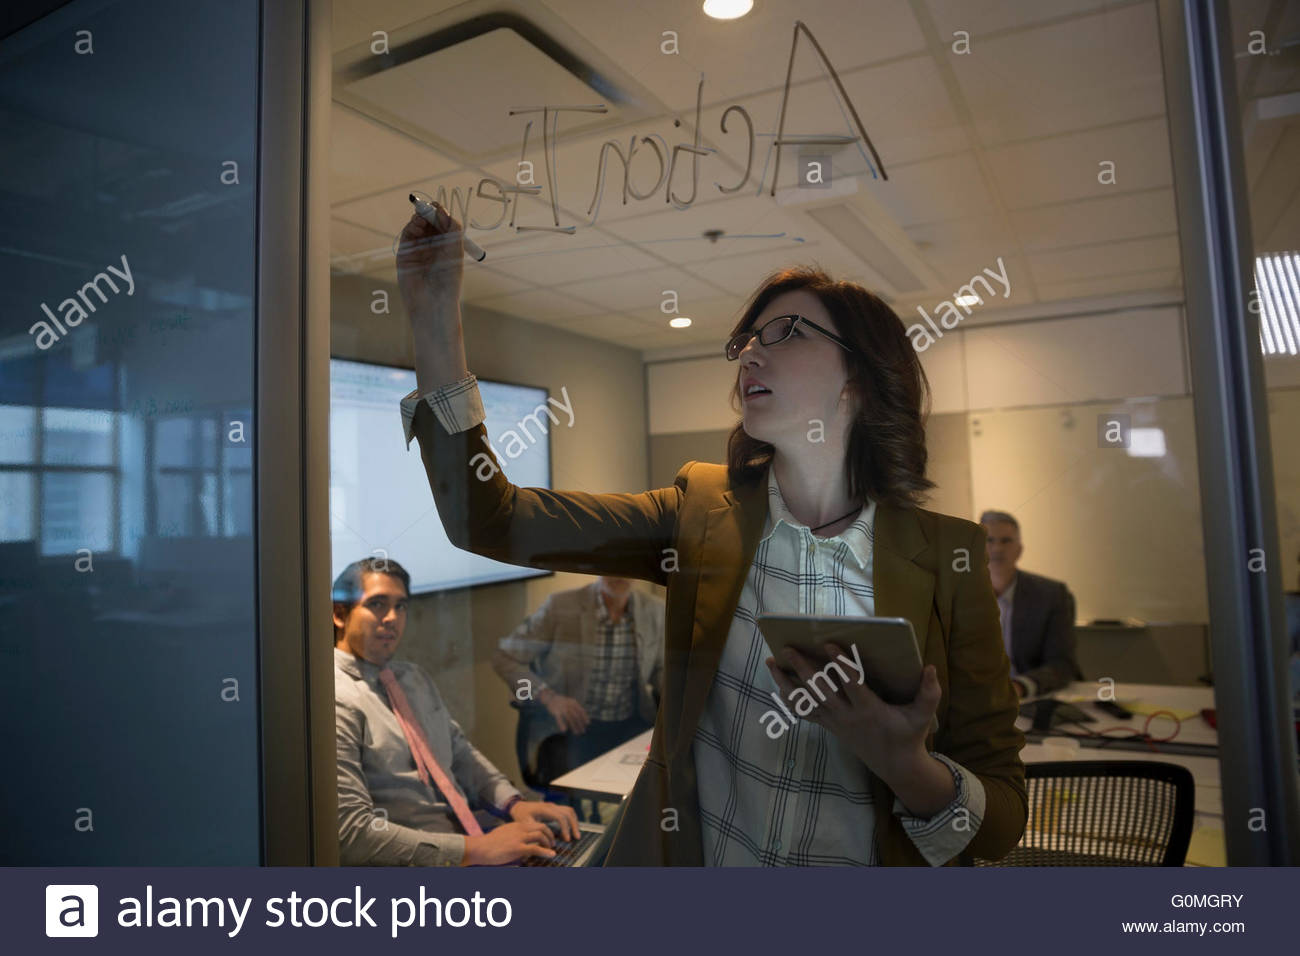 Businesswoman with digital tablet writing on glass - Stock Image